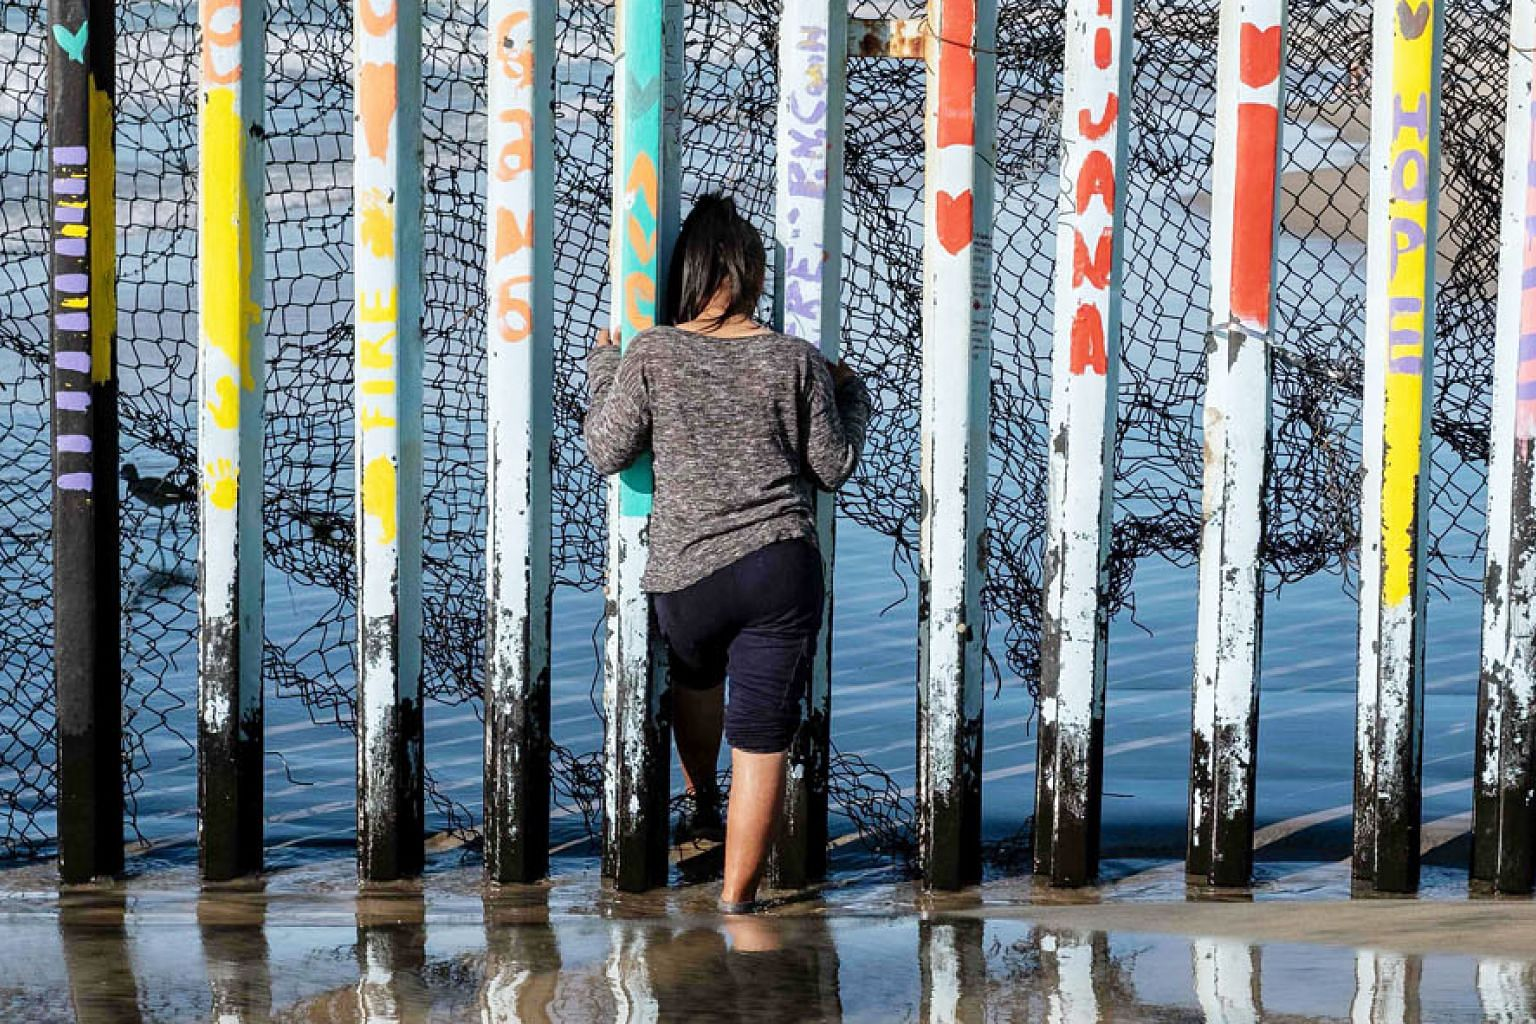 A girl from El Salvador looking through the US-Mexico border fence in Playas de Tijuana, Baja California state, Mexico, hoping, like other Central American migrants, to get into the United States. At the end of 2017, there were nearly 25.4 million refugee